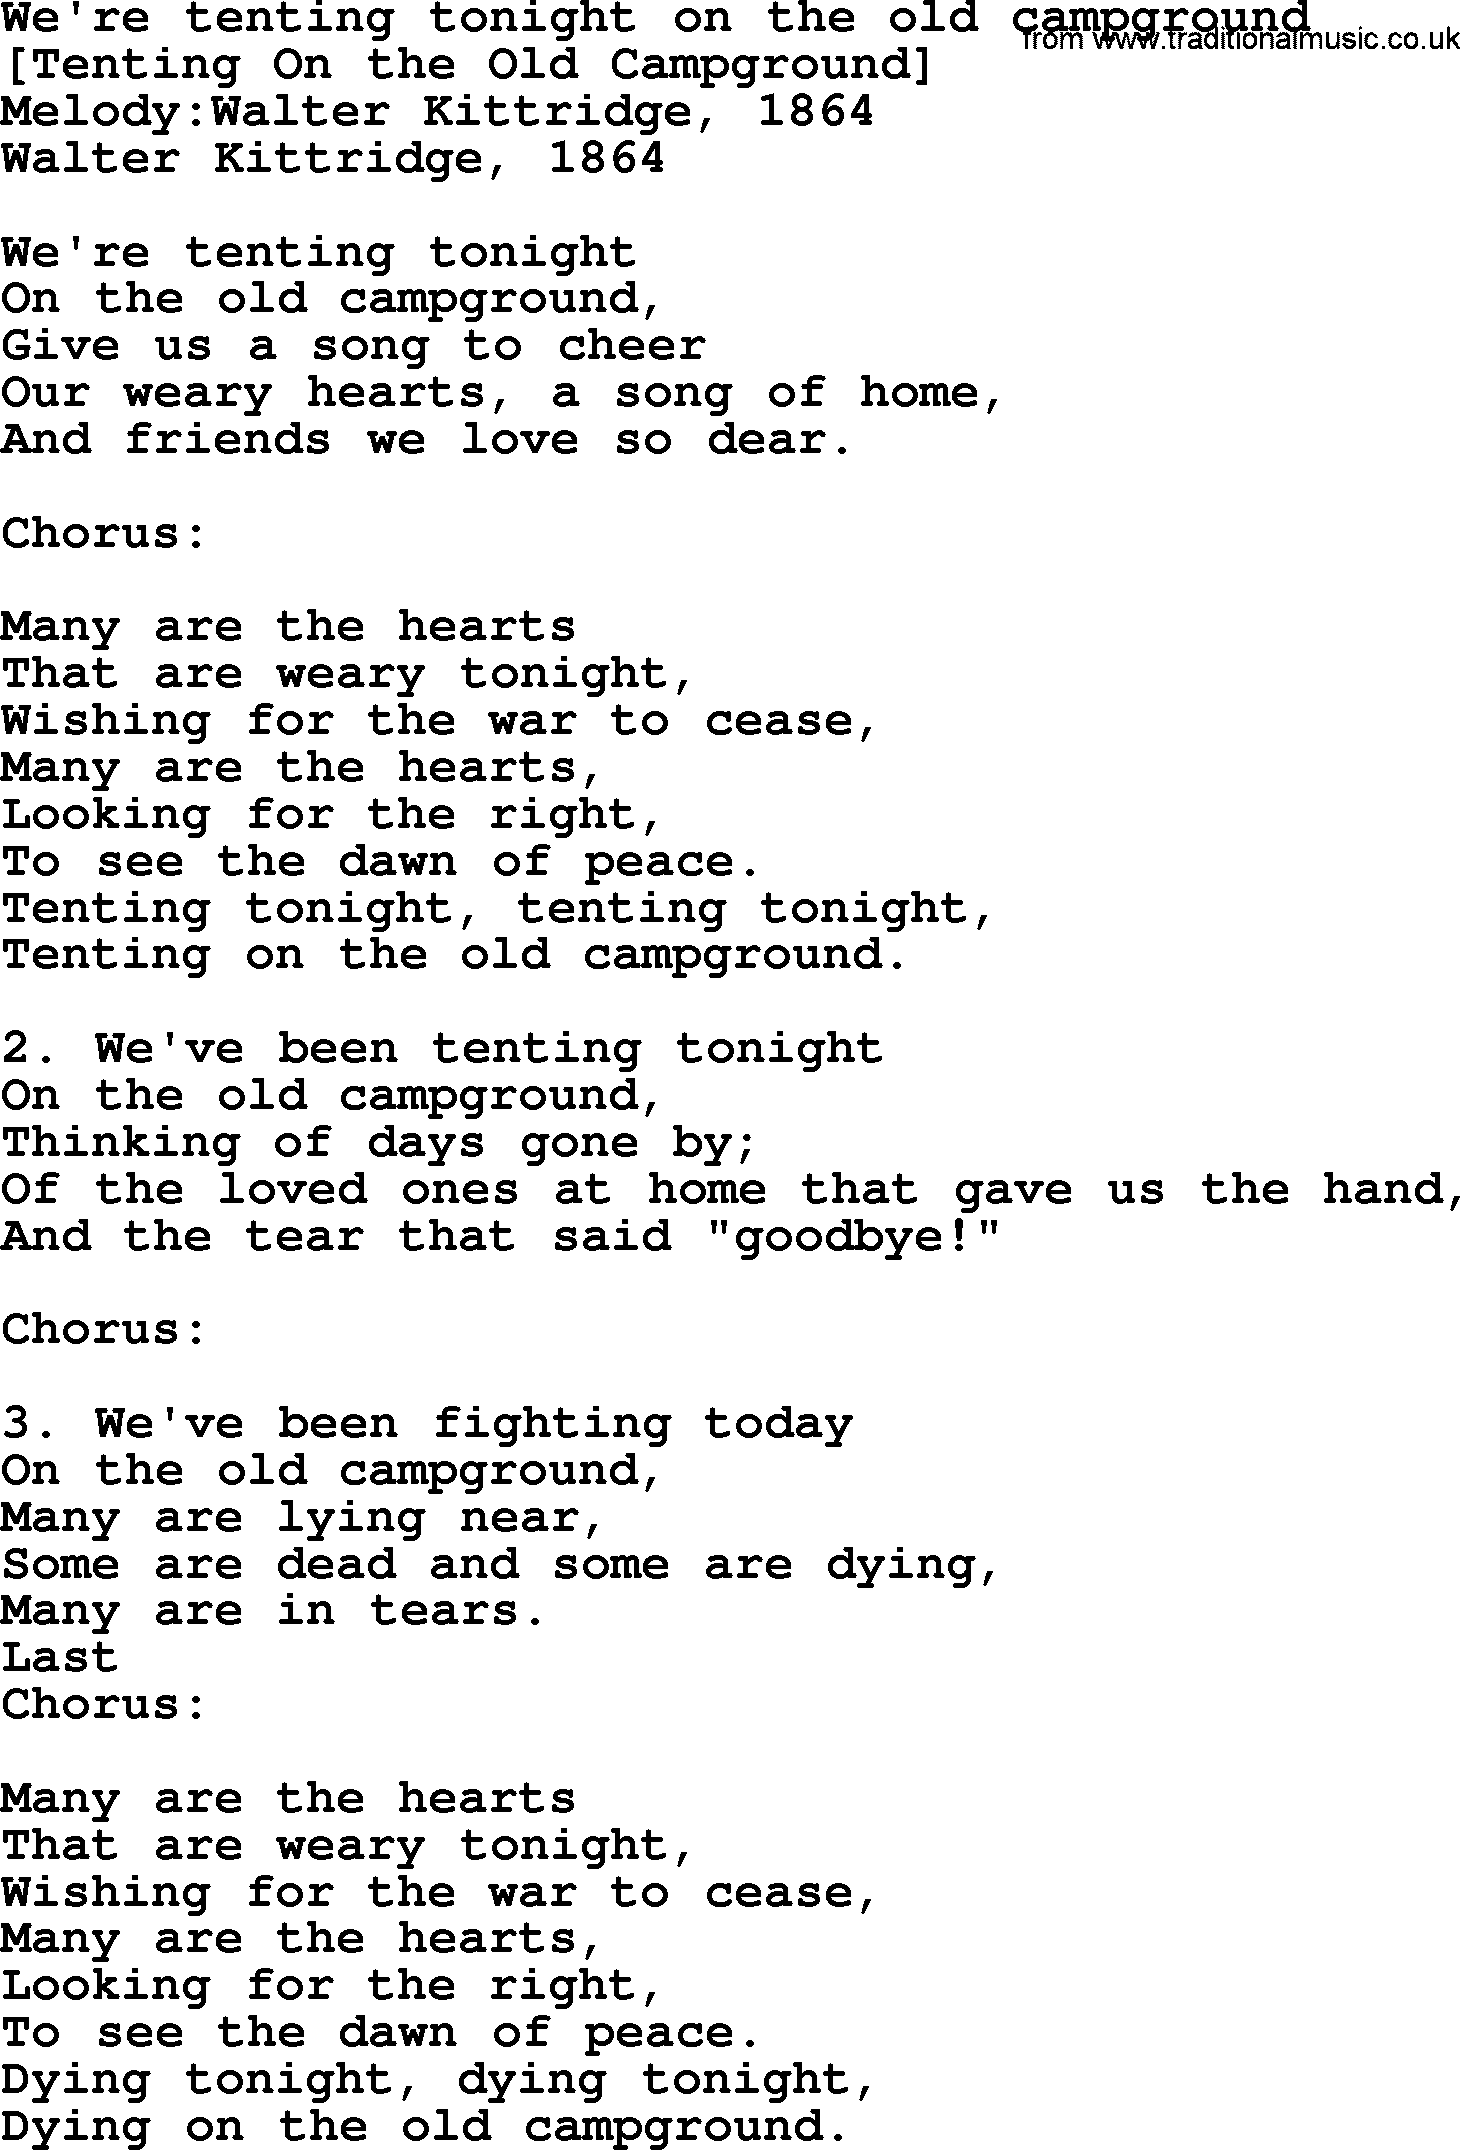 Old American Song Weu0027re Tenting Tonight On The Old C&ground lyrics  sc 1 st  Traditional Music Library & Old American Song - Lyrics for: Weu0027re Tenting Tonight On The Old ...